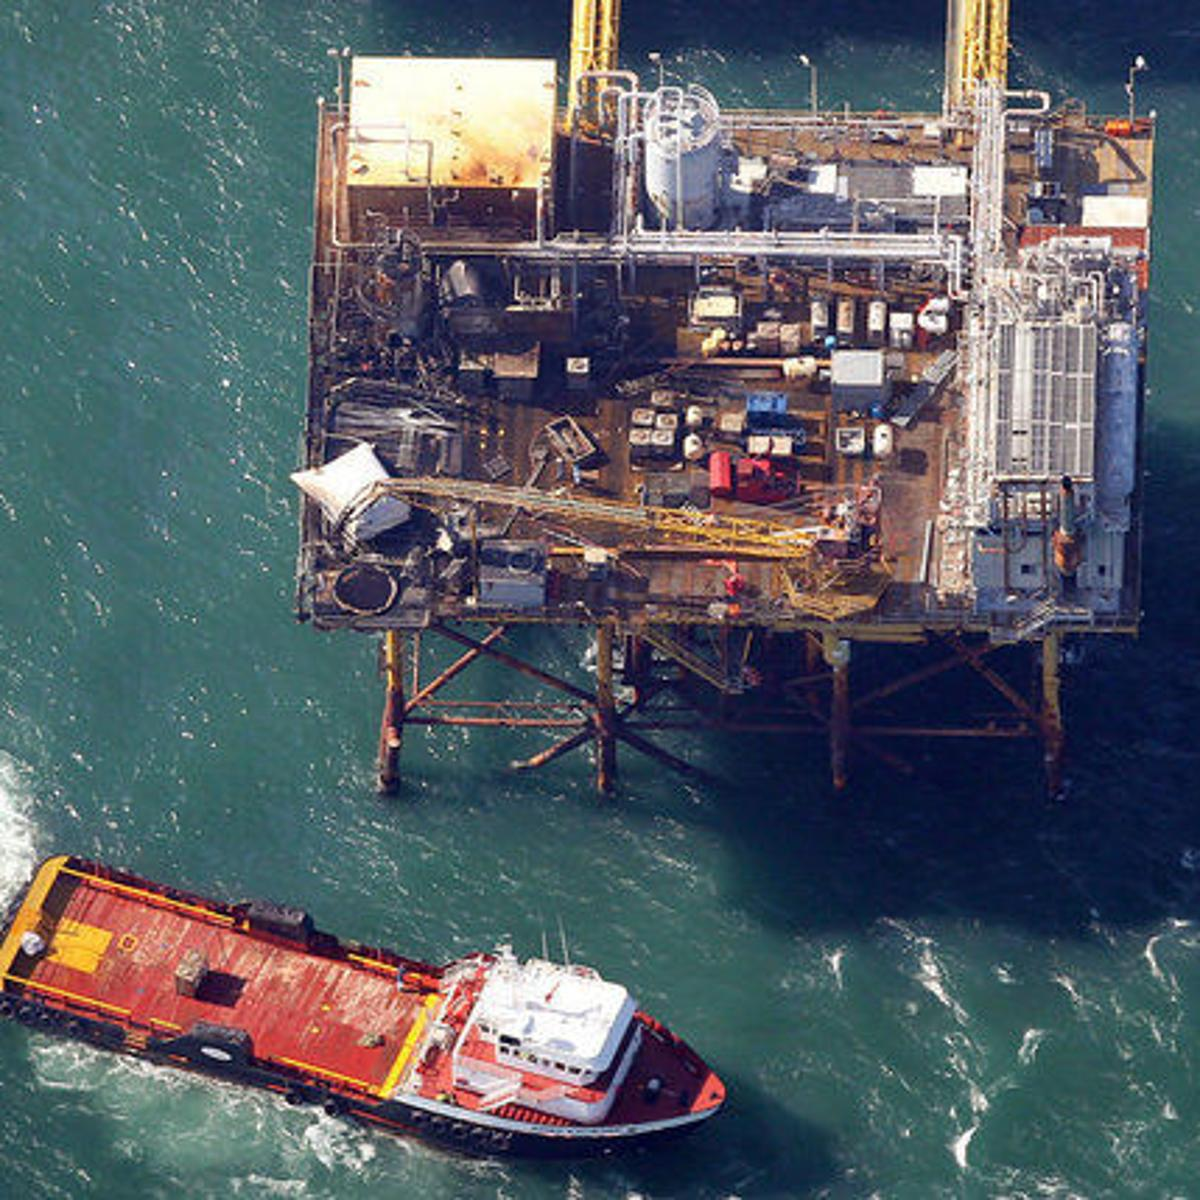 Accident sheds light on use of Filipino 'guest workers' in offshore